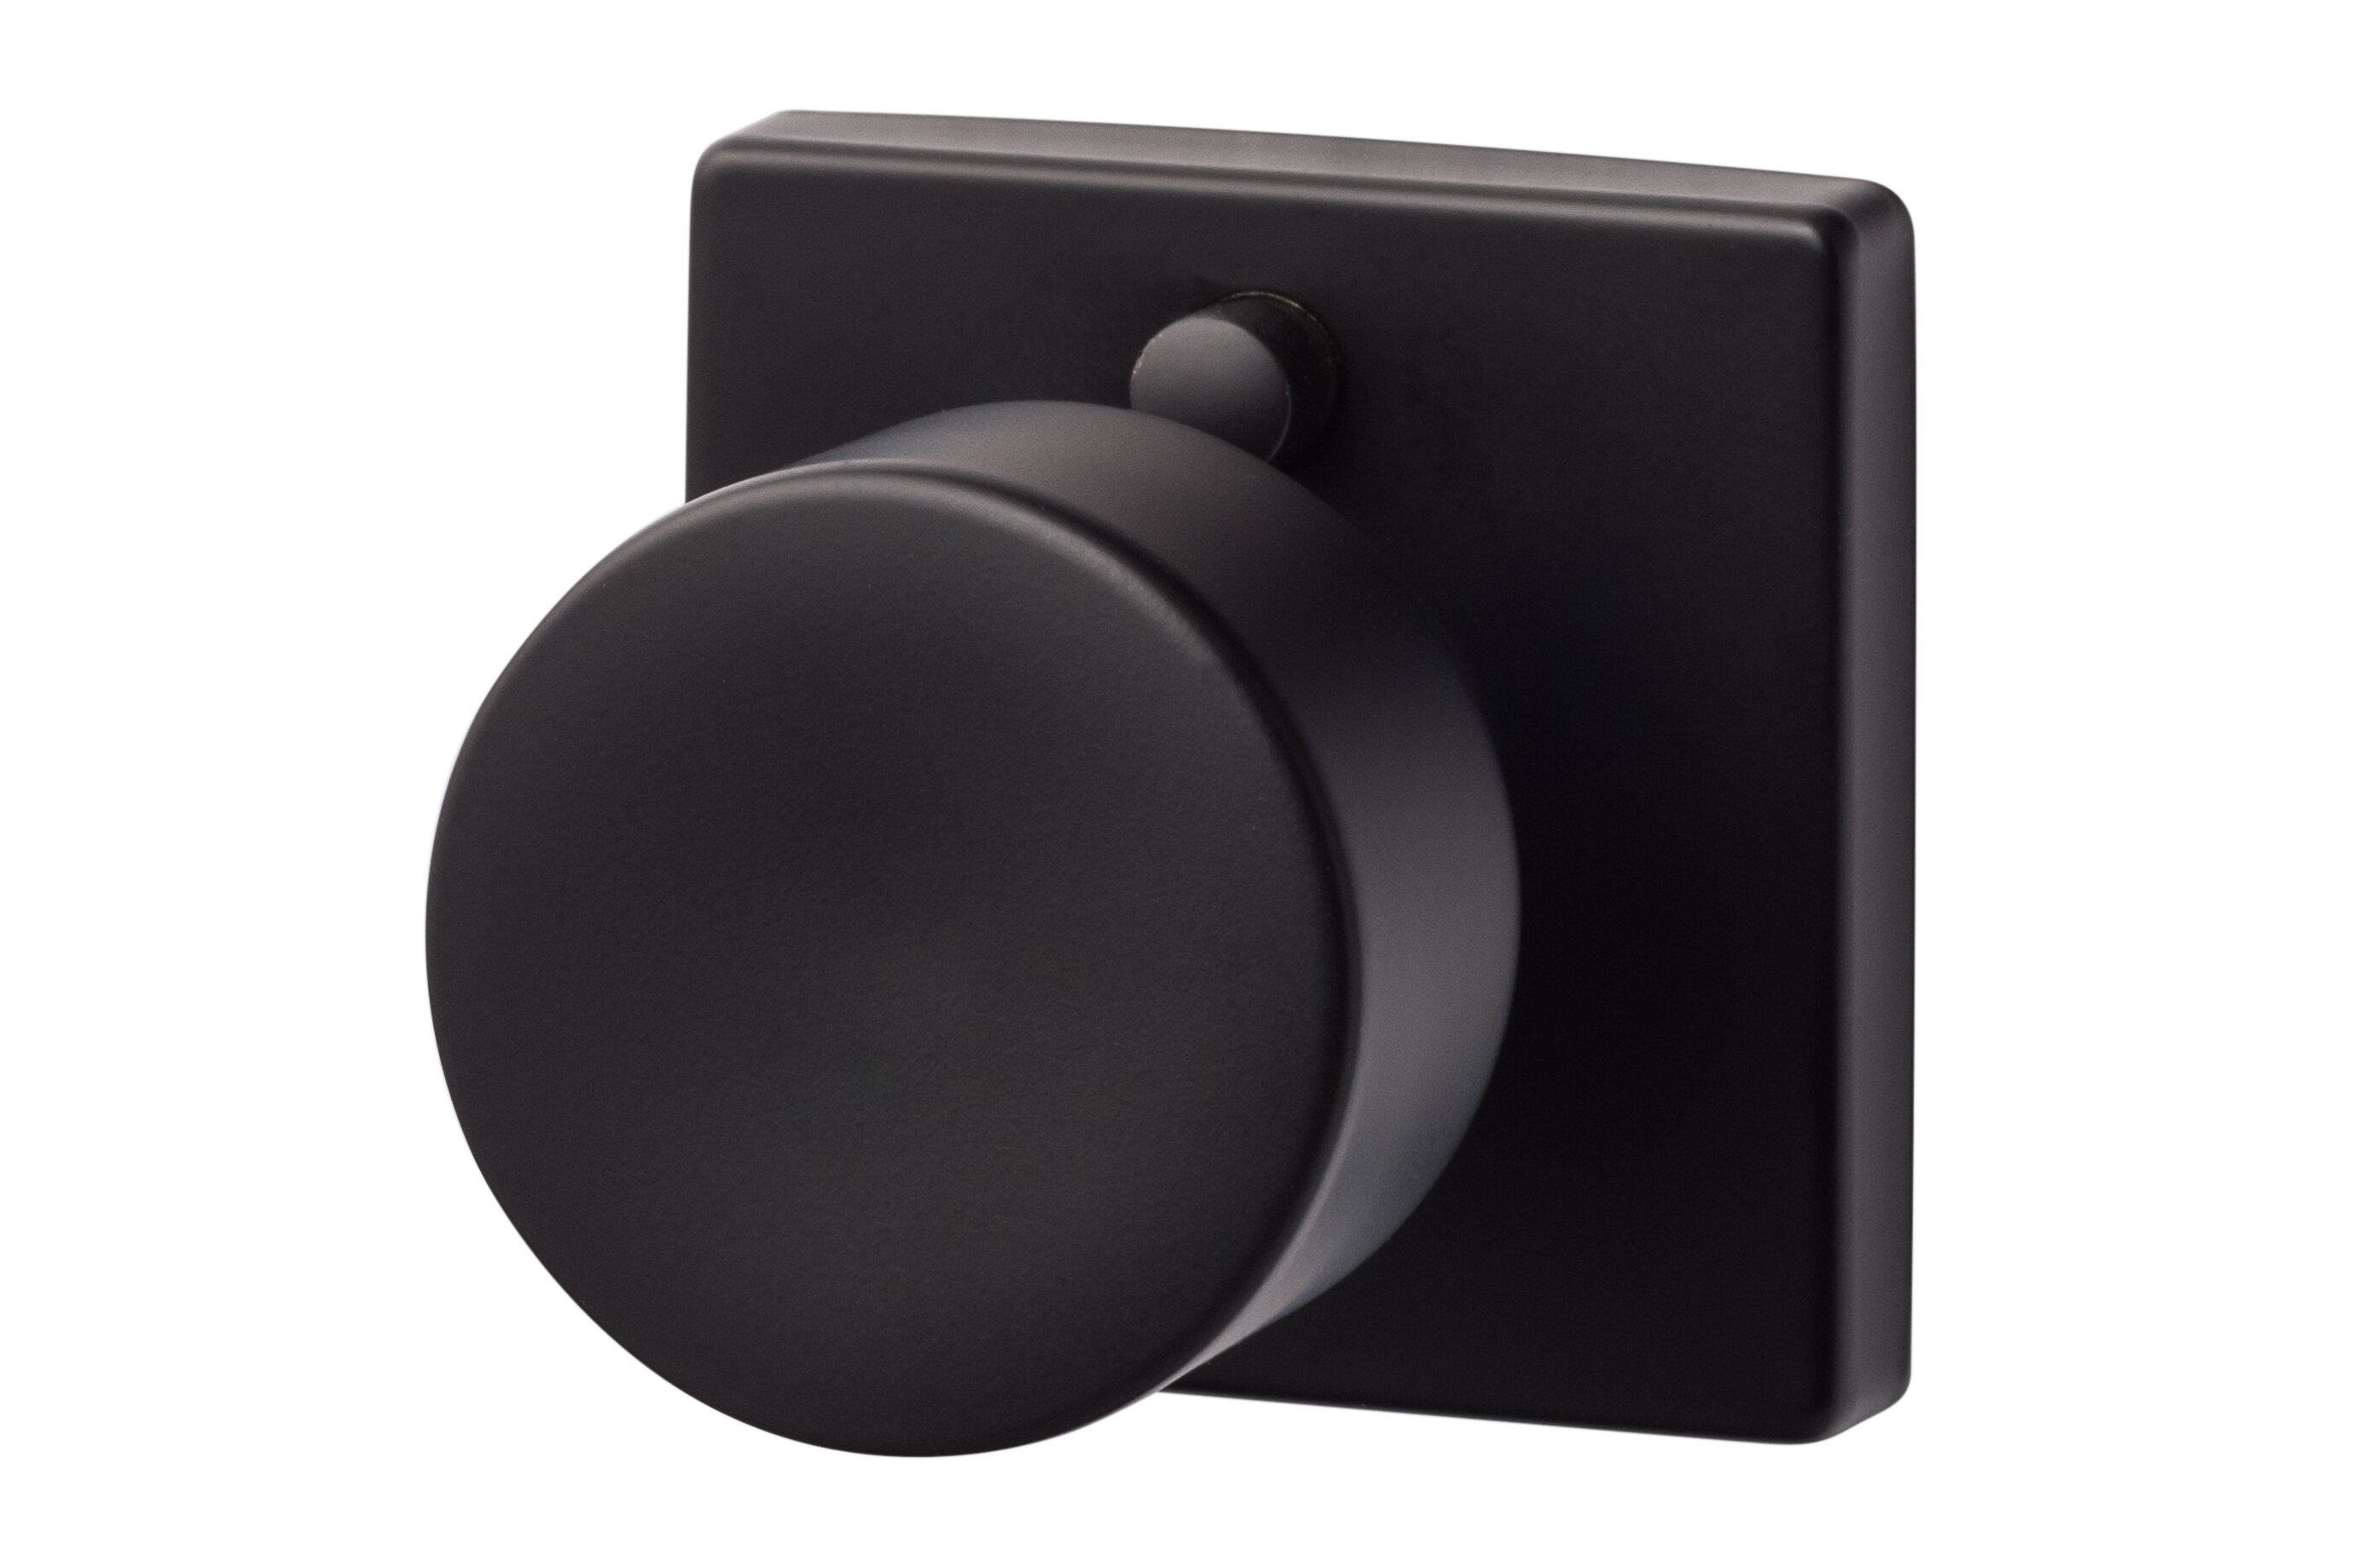 Sure LocHardware Bergen Privacy Door Knob With Square Rosette U0026 Reviews |  Wayfair